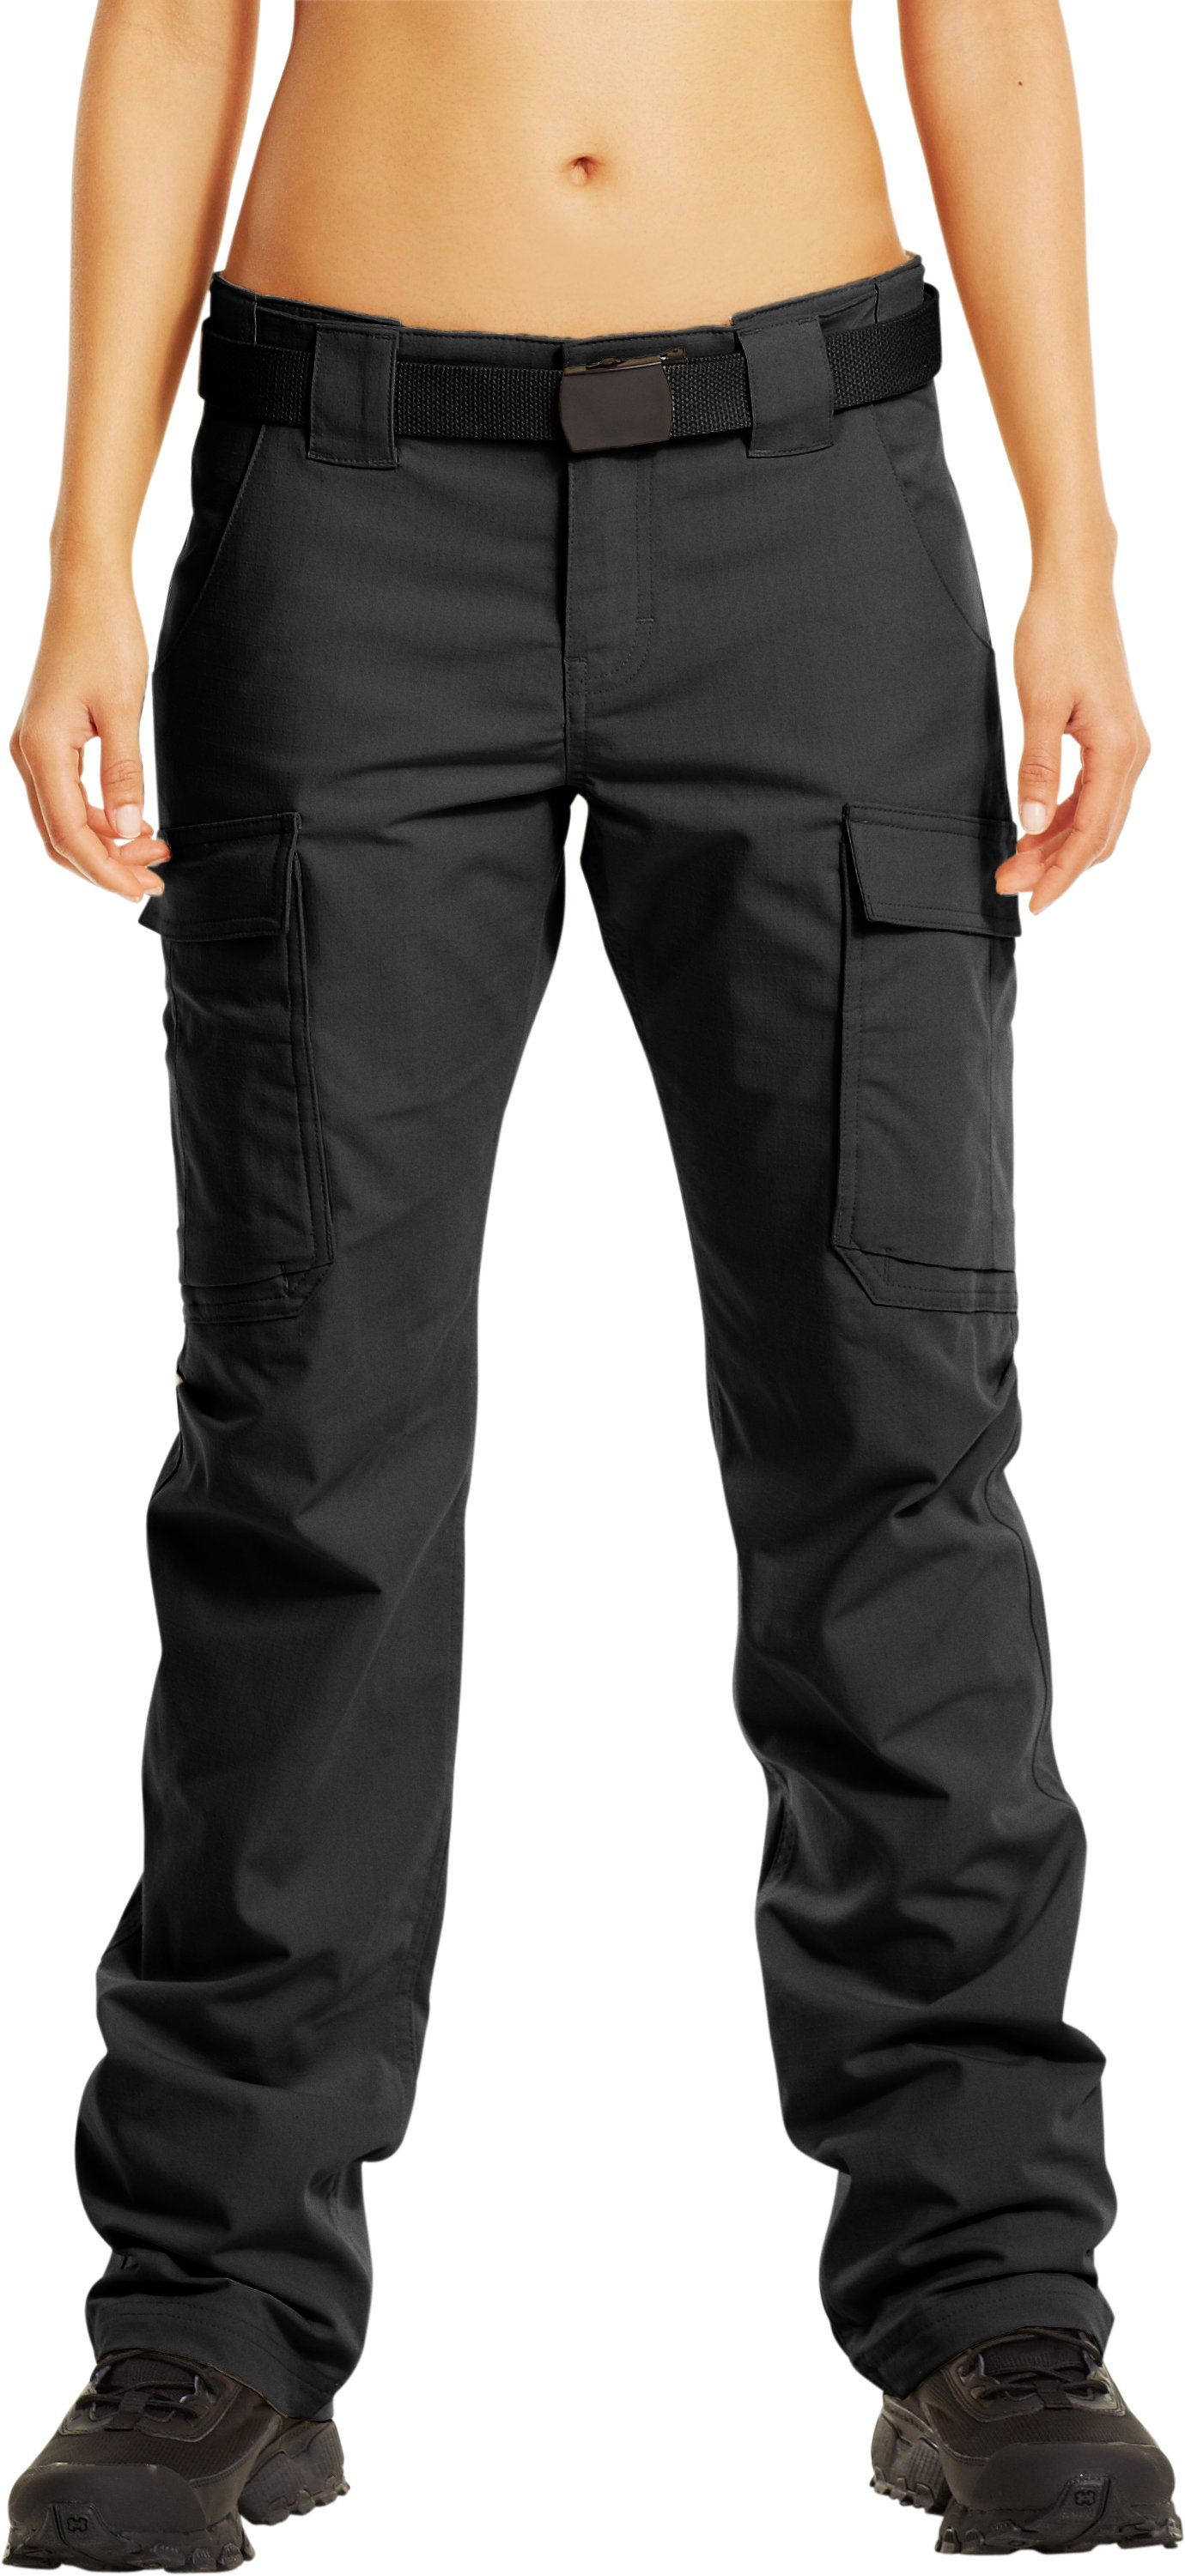 Women's Tactical Duty Pants, Black , undefined